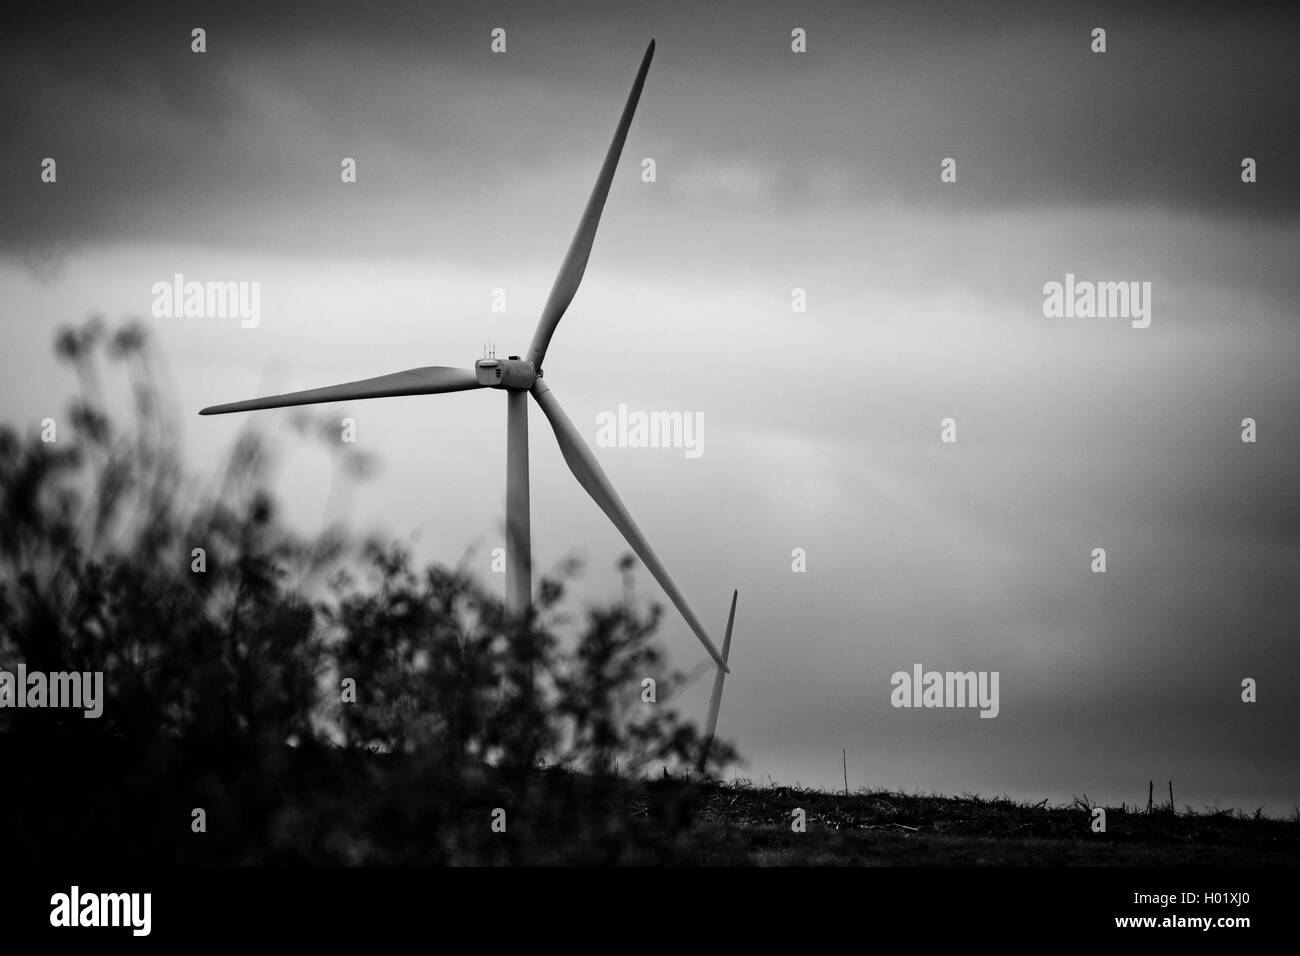 Wind turbine on the Black Law Wind Farm, South Lanarkshire, Scotland - Stock Image